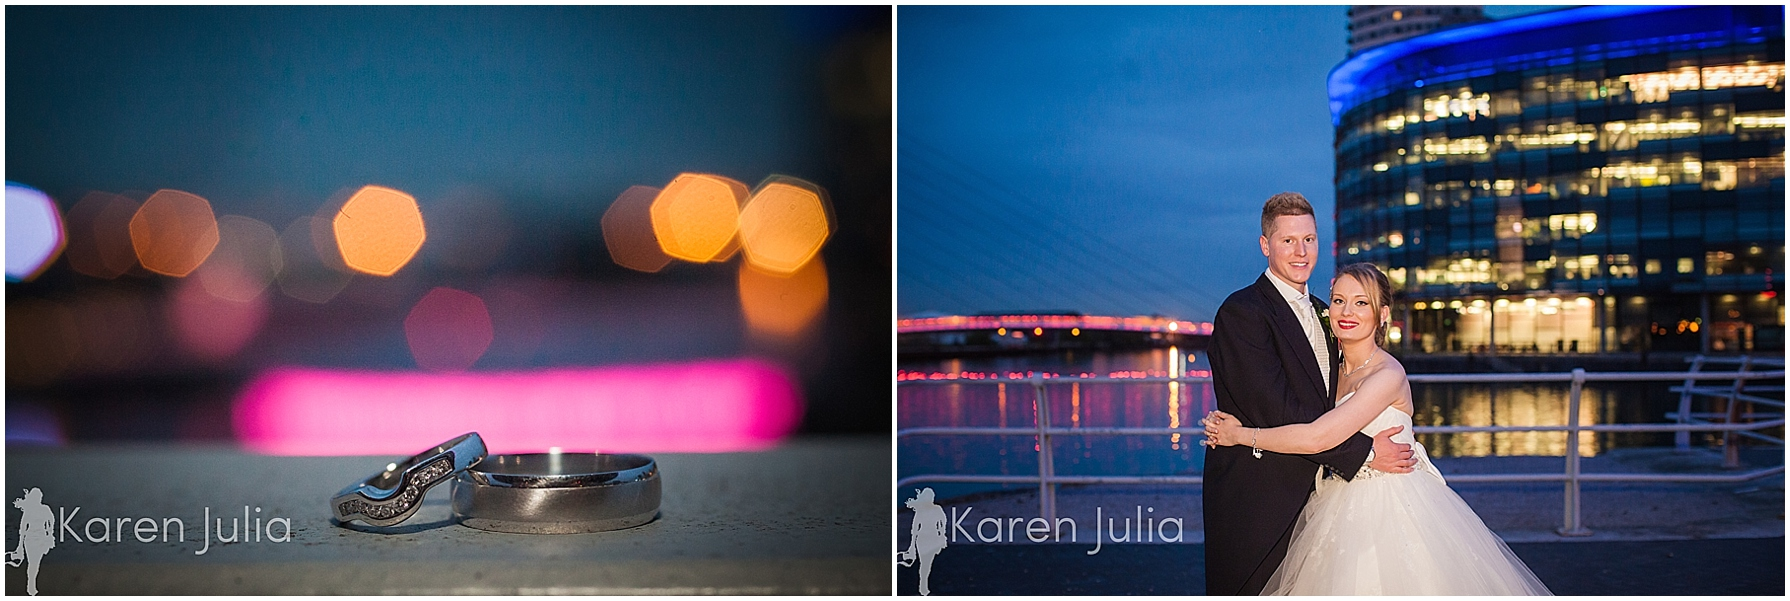 Blue themed Lowry Wedding Photography couple portraits at dusk